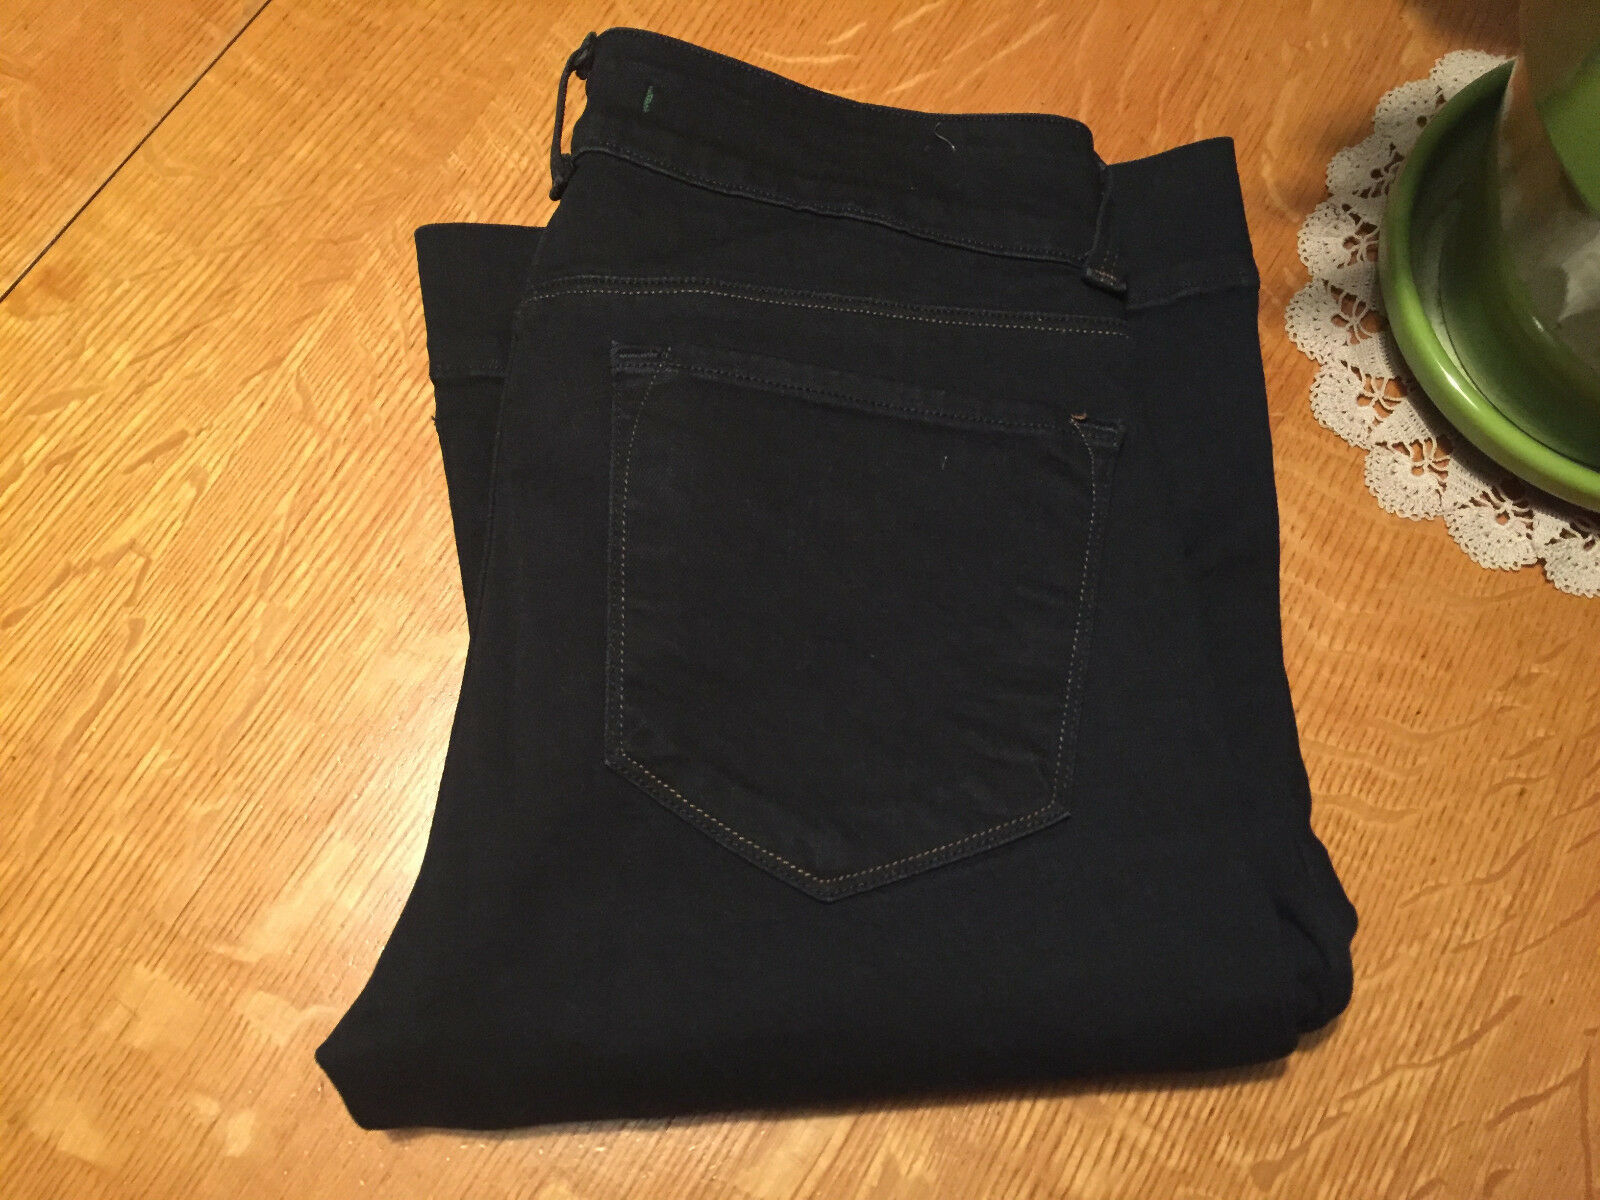 J BRAND MOSCOW FLARE DARK WASH JEANS 29 X 34 NWOT VERY NICE